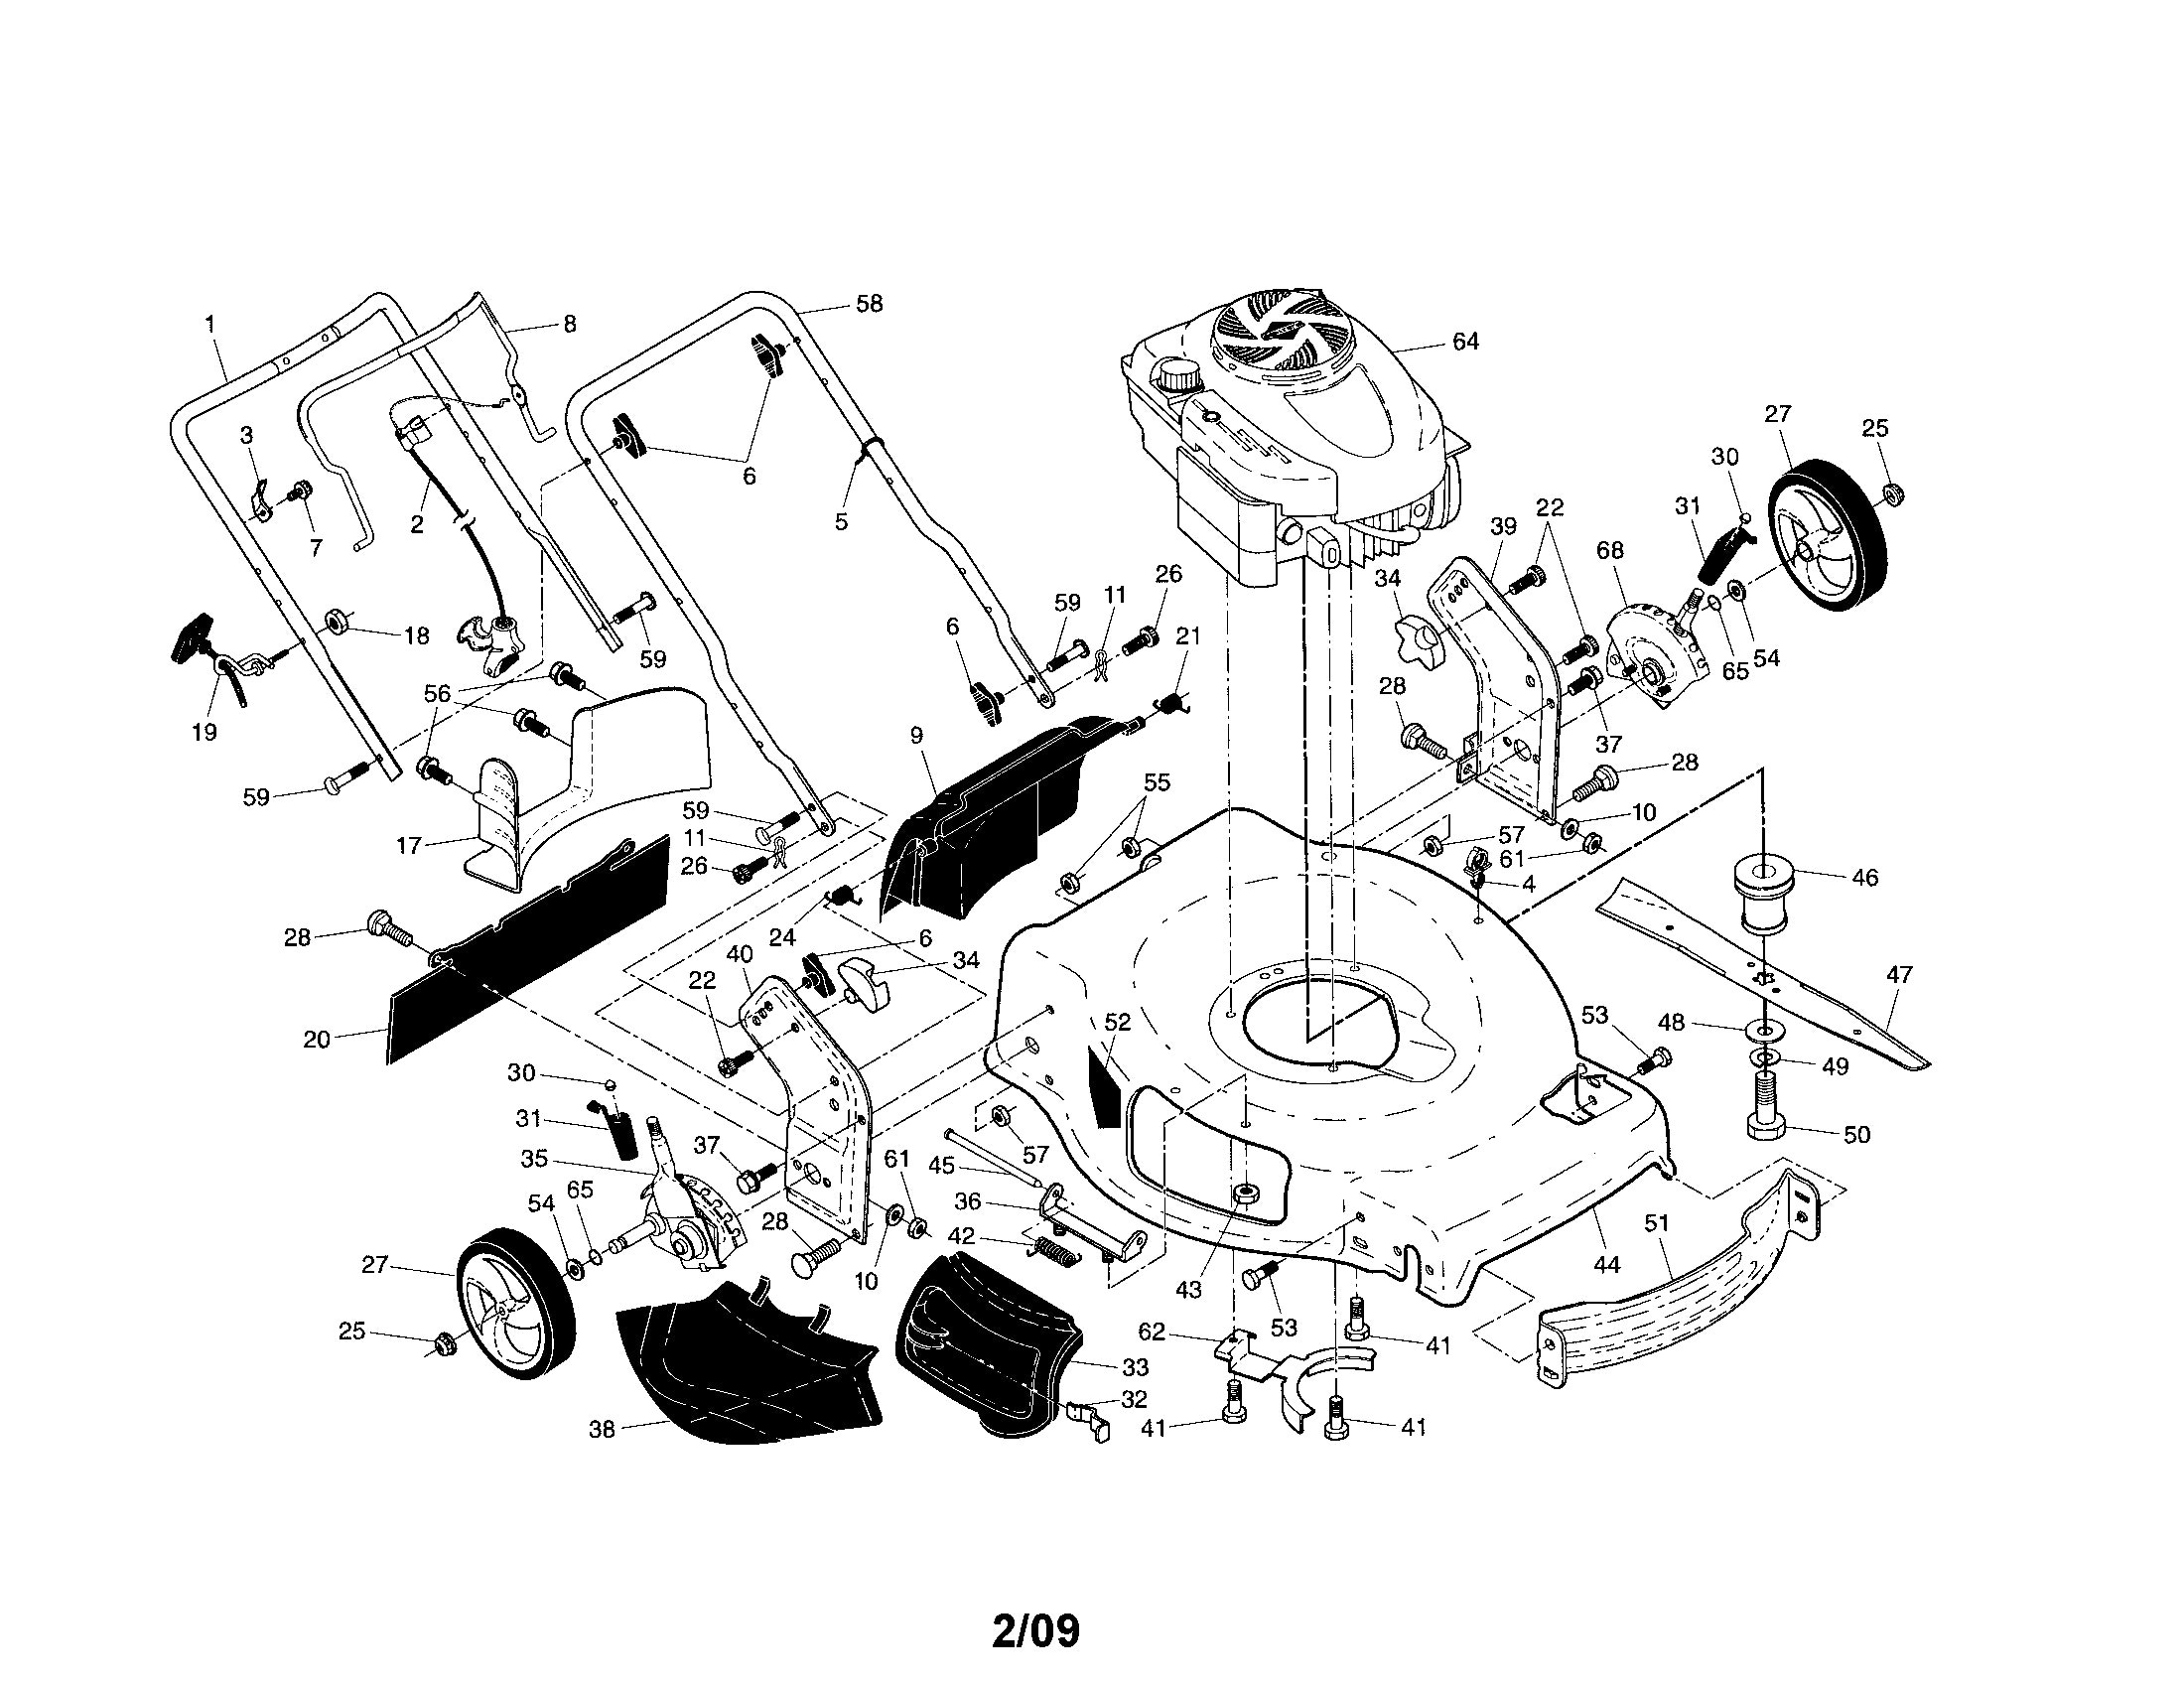 Briggs And Stratton Ohv Engine Parts Diagrams Wiring Library Honda Lawn Mower Carburetor Linkage Diagram To Download 550ex Craftsman Diy